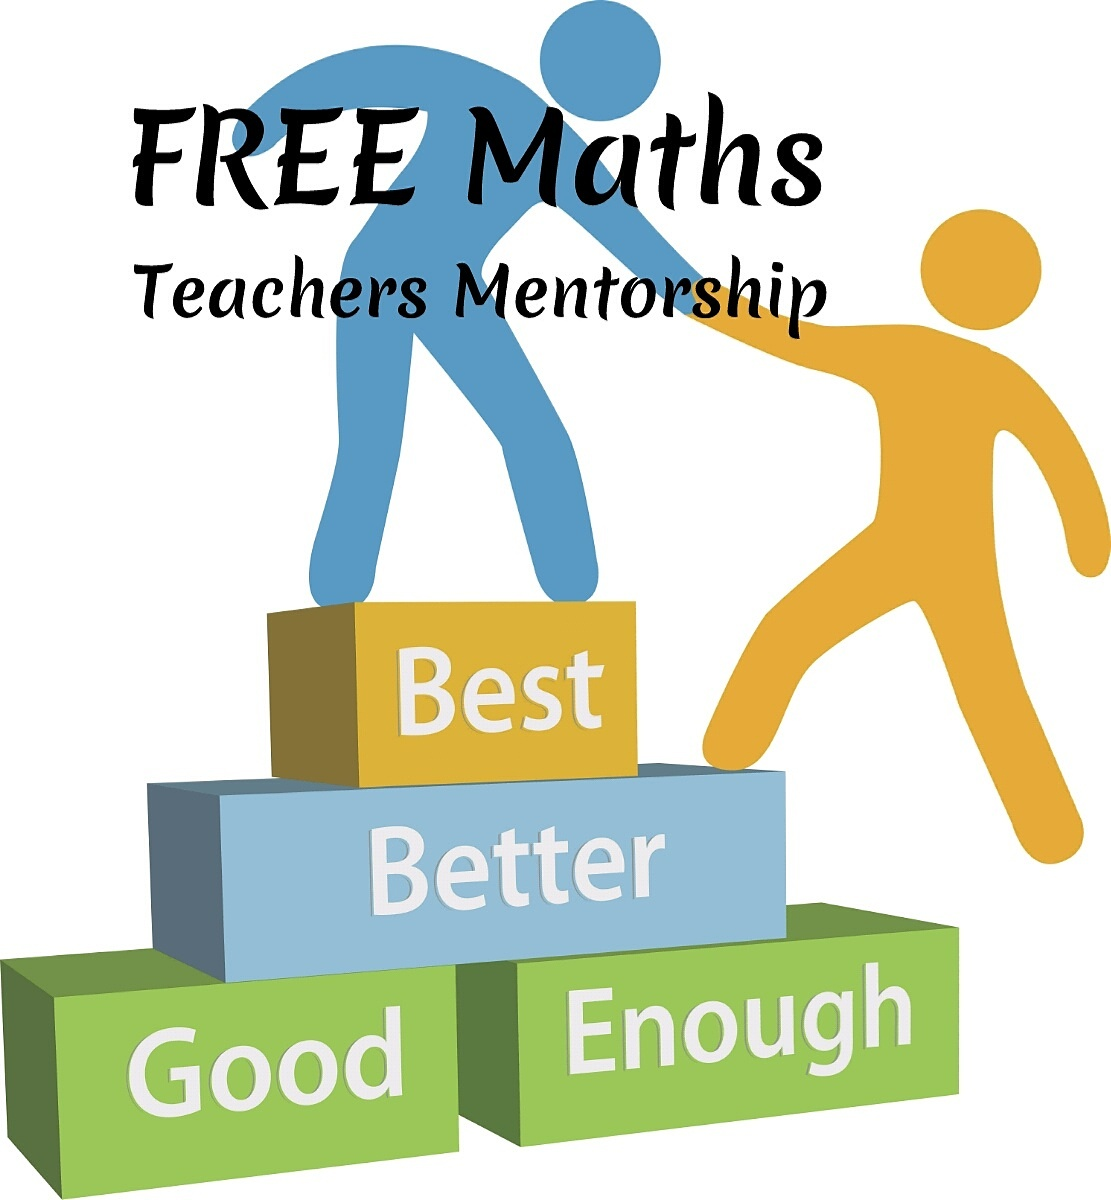 FREE Mentorship for Maths Teachers – The Lifematics Centre\'s Blog